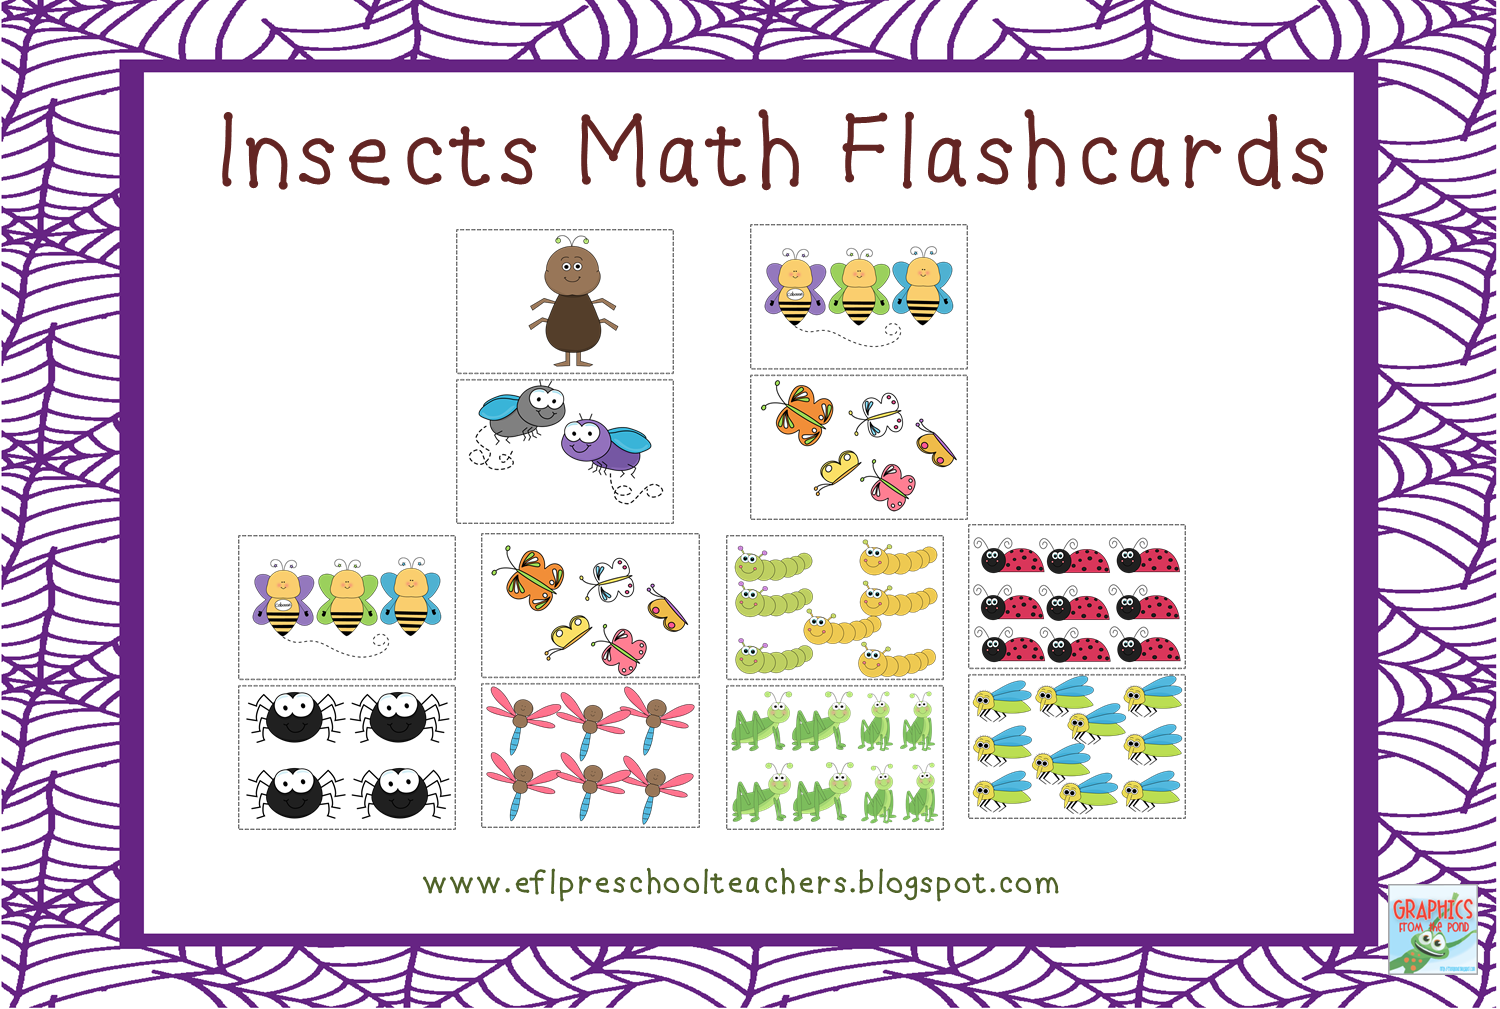 Esl Efl Preschool Teachers Insects